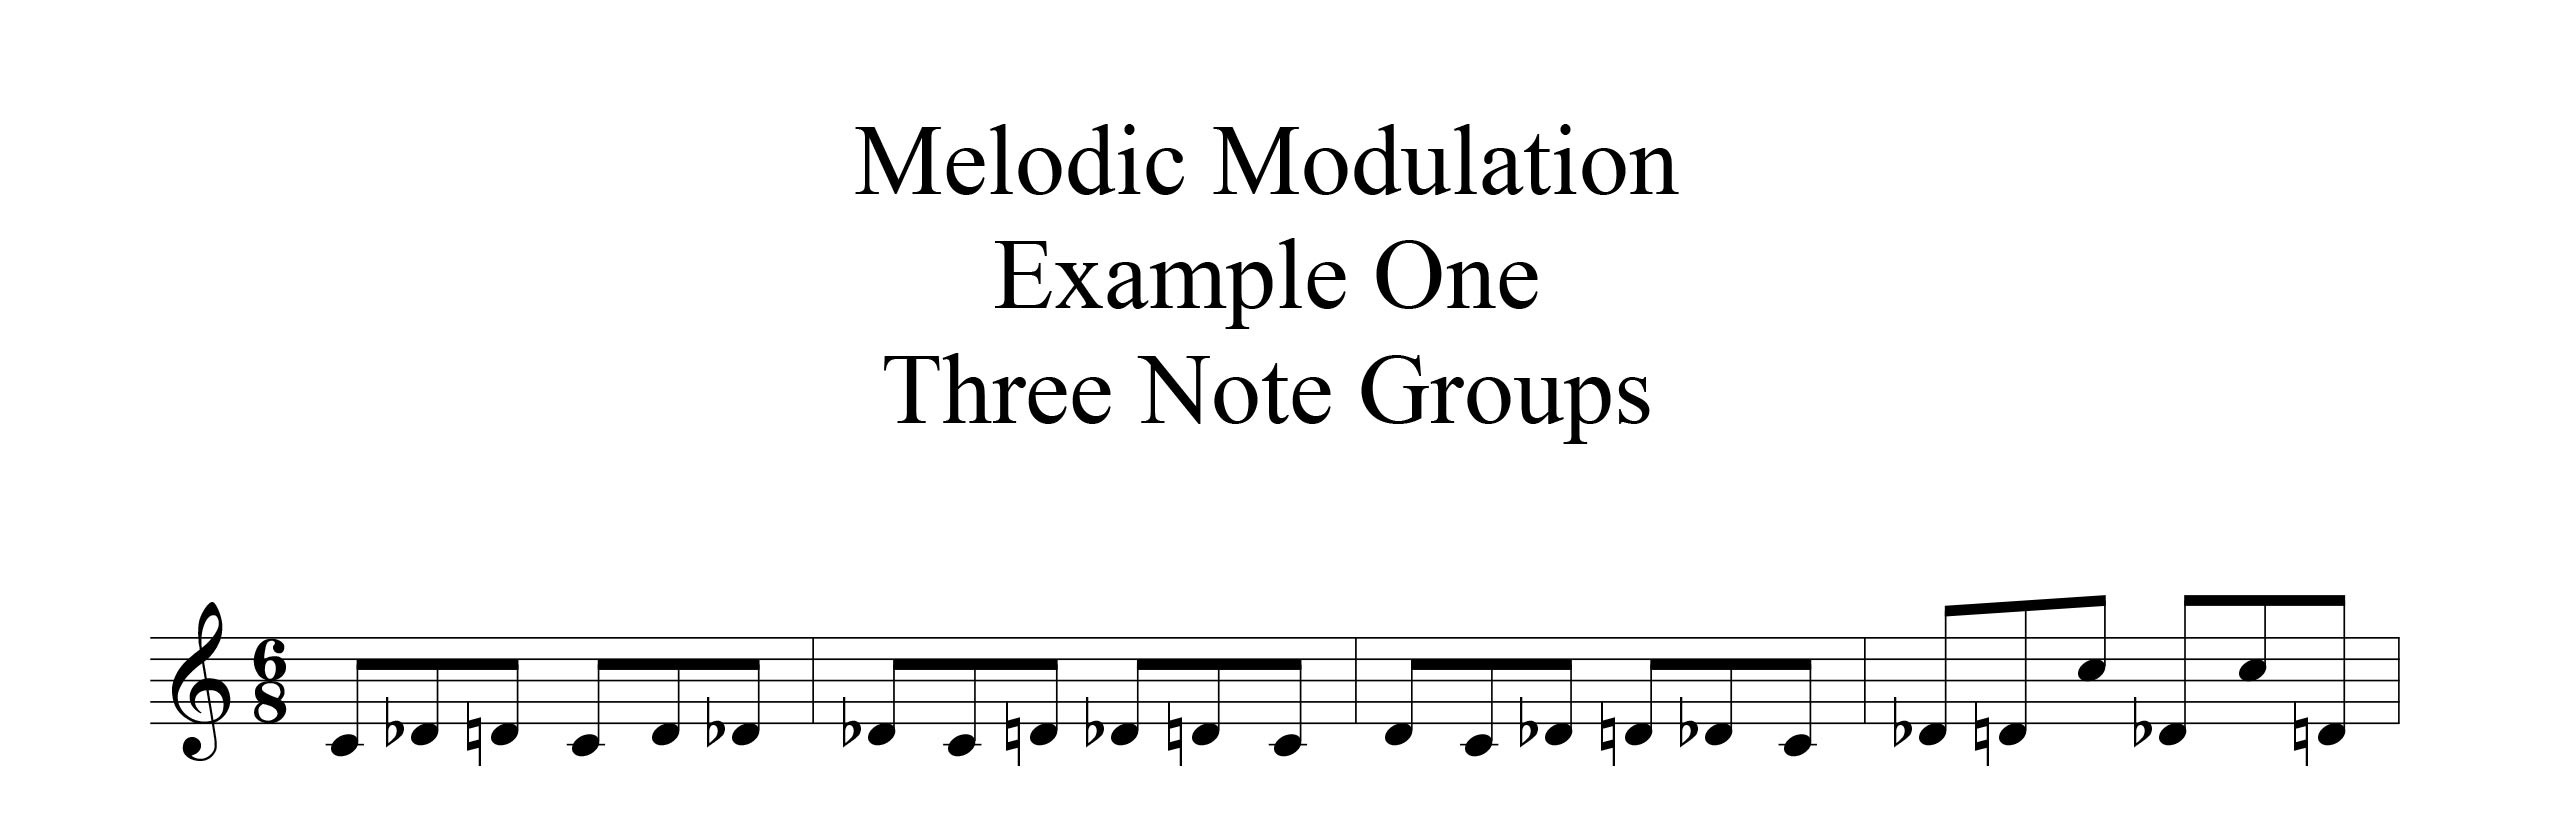 Melodic-Modulation-3-note-groups-Example-one-by-bruce-arnold-for-muse-eek-publishing-inc.